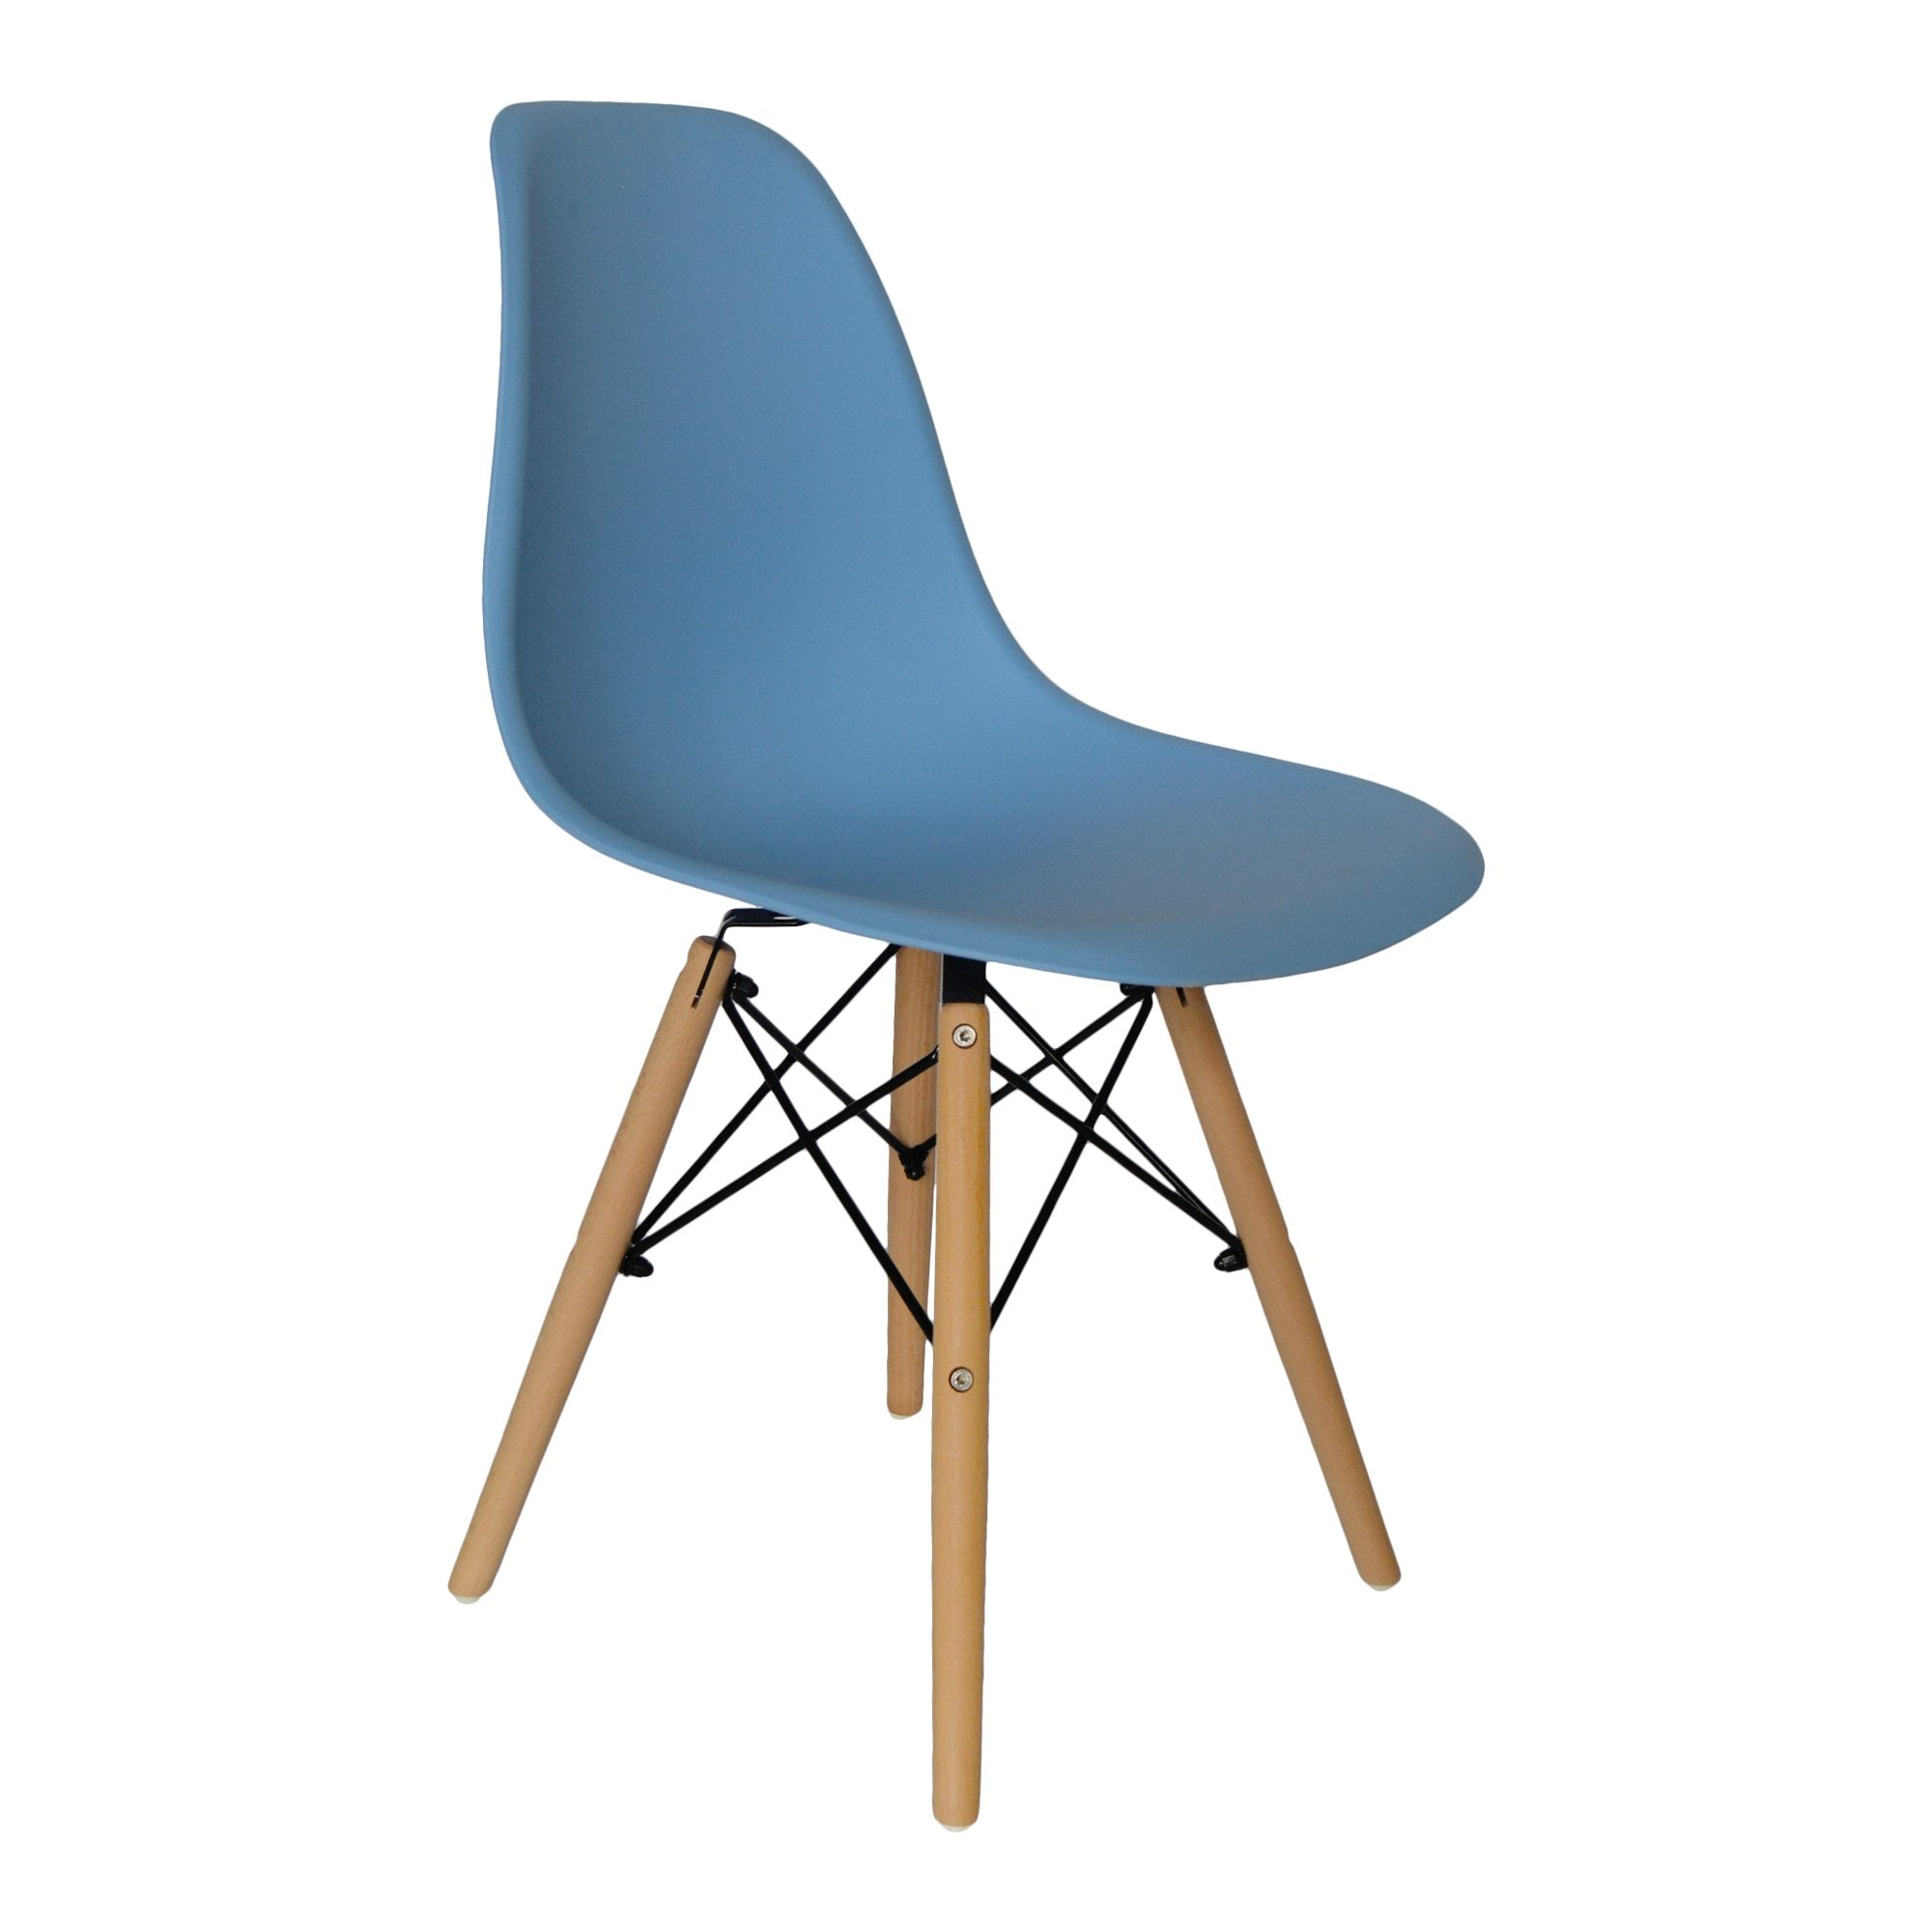 Seamless Chair for the Caeruleaphile